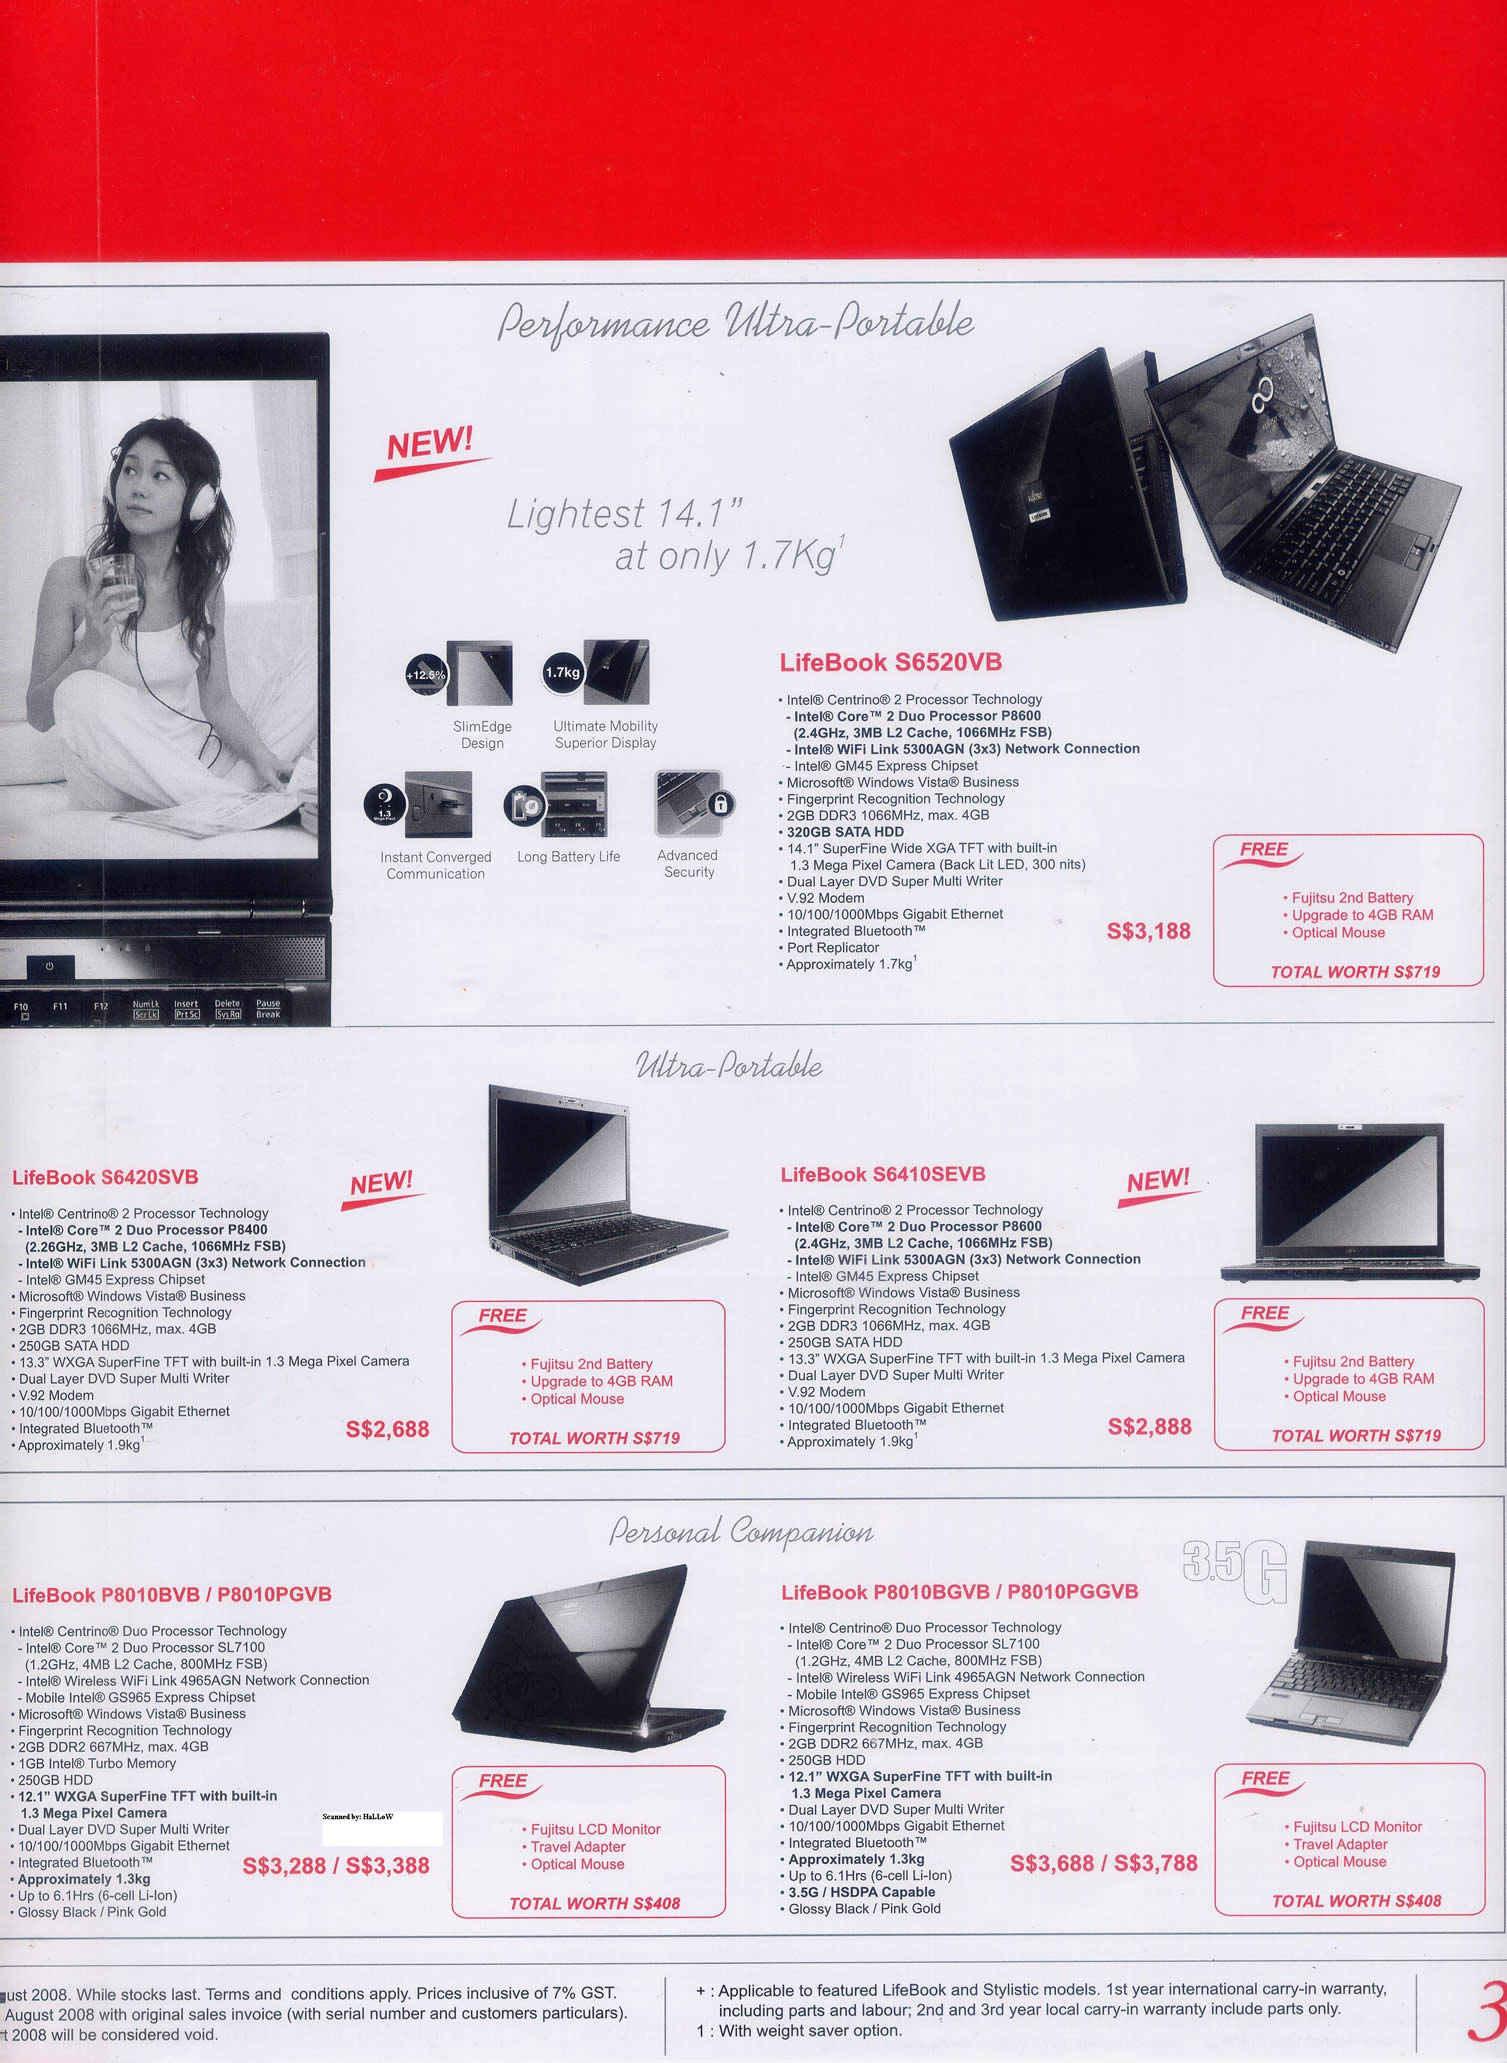 Comex 2008 price list image brochure of Fujitsu Notebook 3